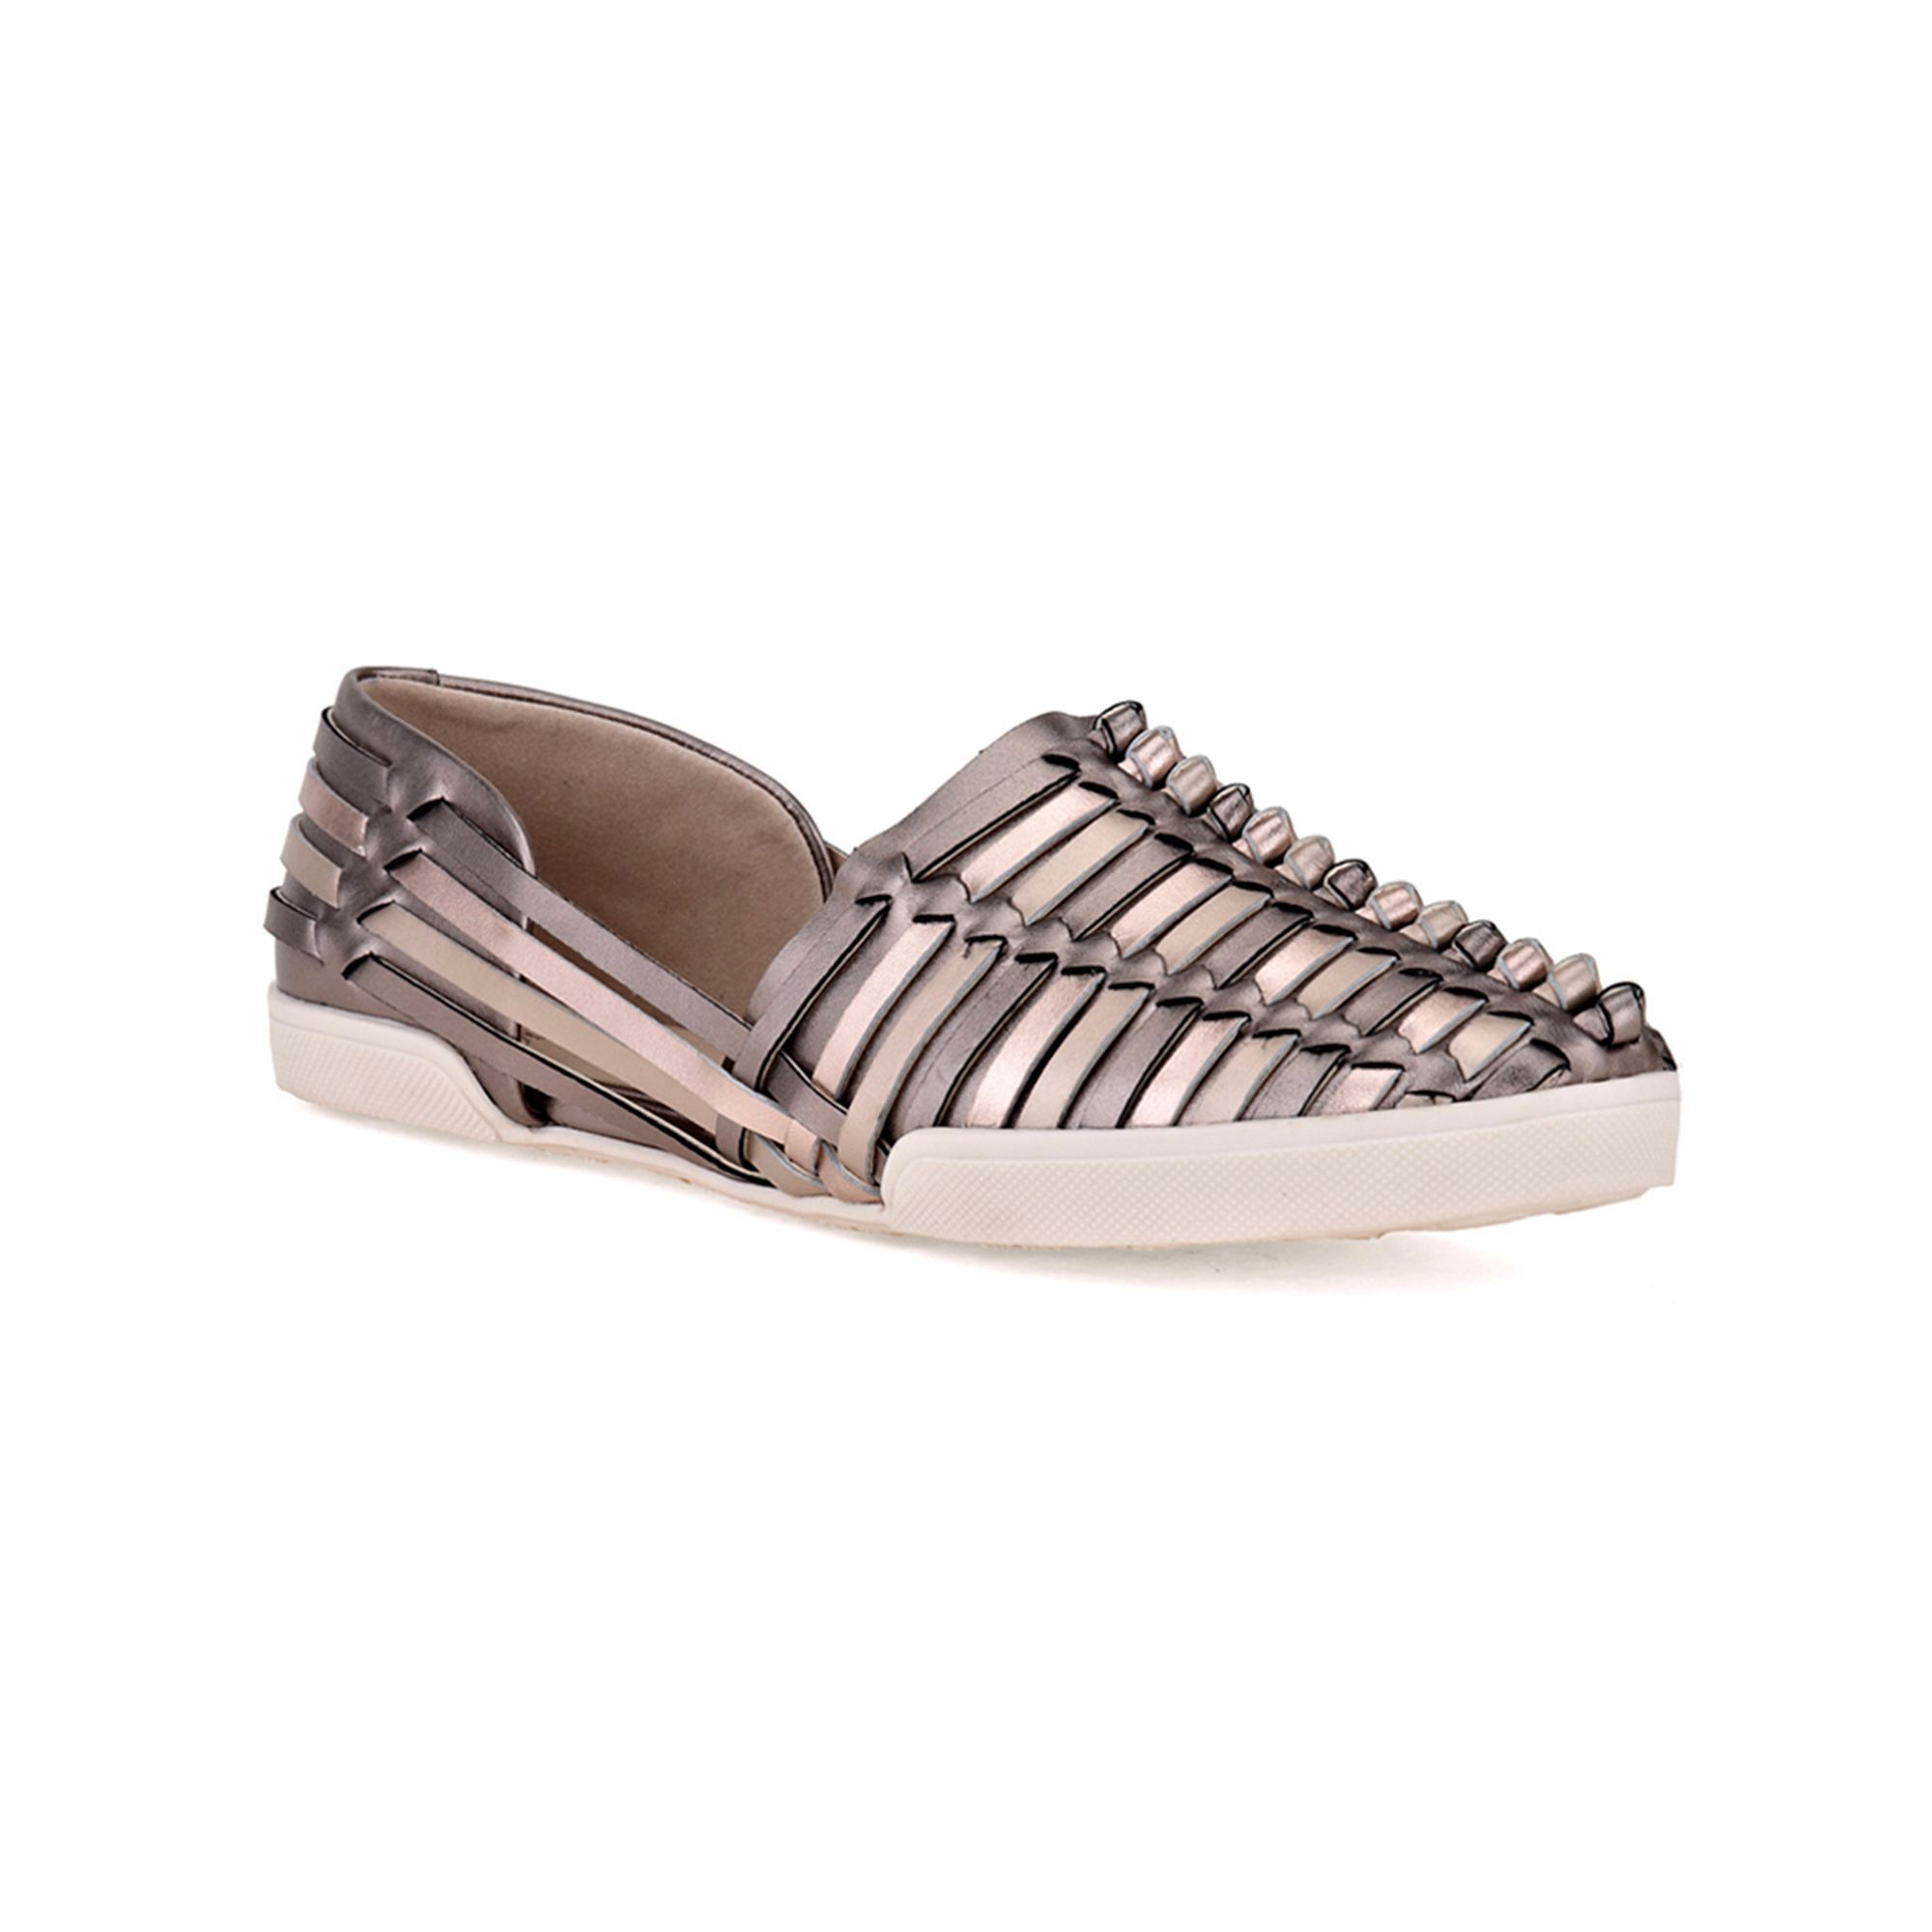 """#TuesdayShoesday Elliott Lucca® """"Rani"""" Casual Slip-ons, it's all about sneaker flats with woven detail for chic, trend-right style #LoveStyle"""